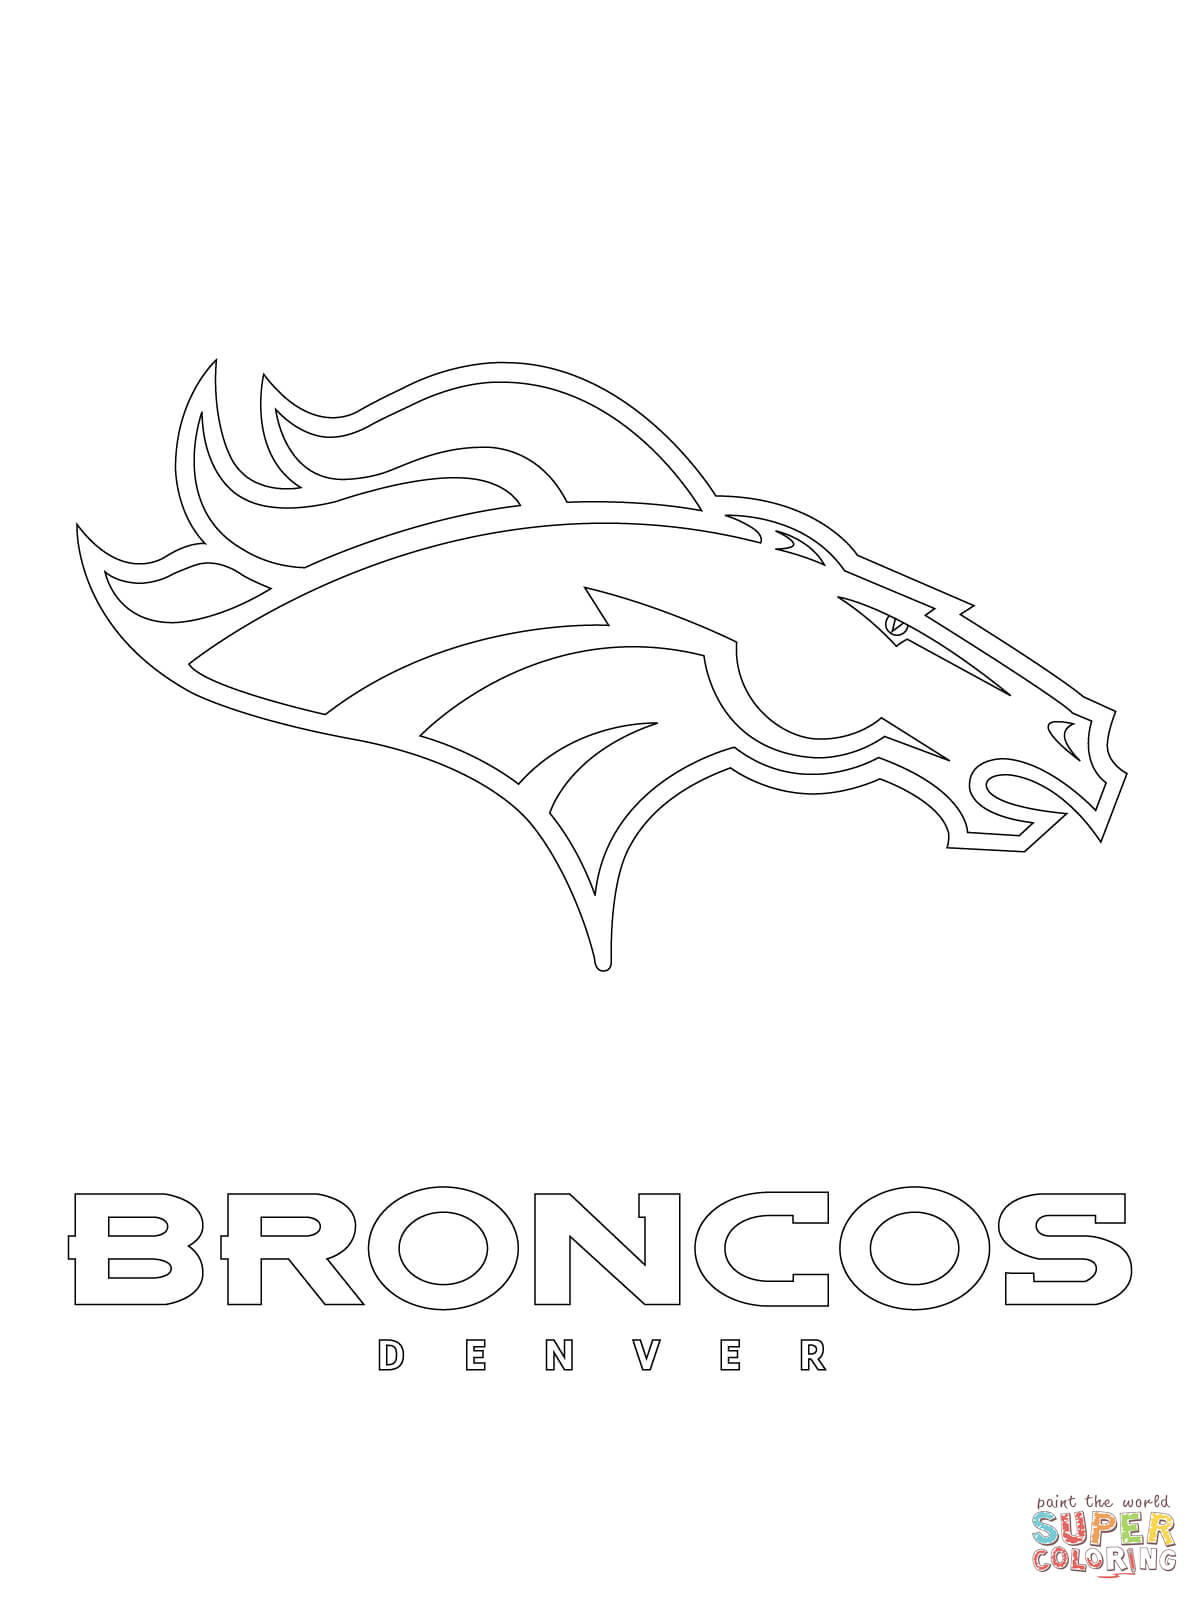 Denver Broncos Logo coloring page | Free Printable Coloring Pages